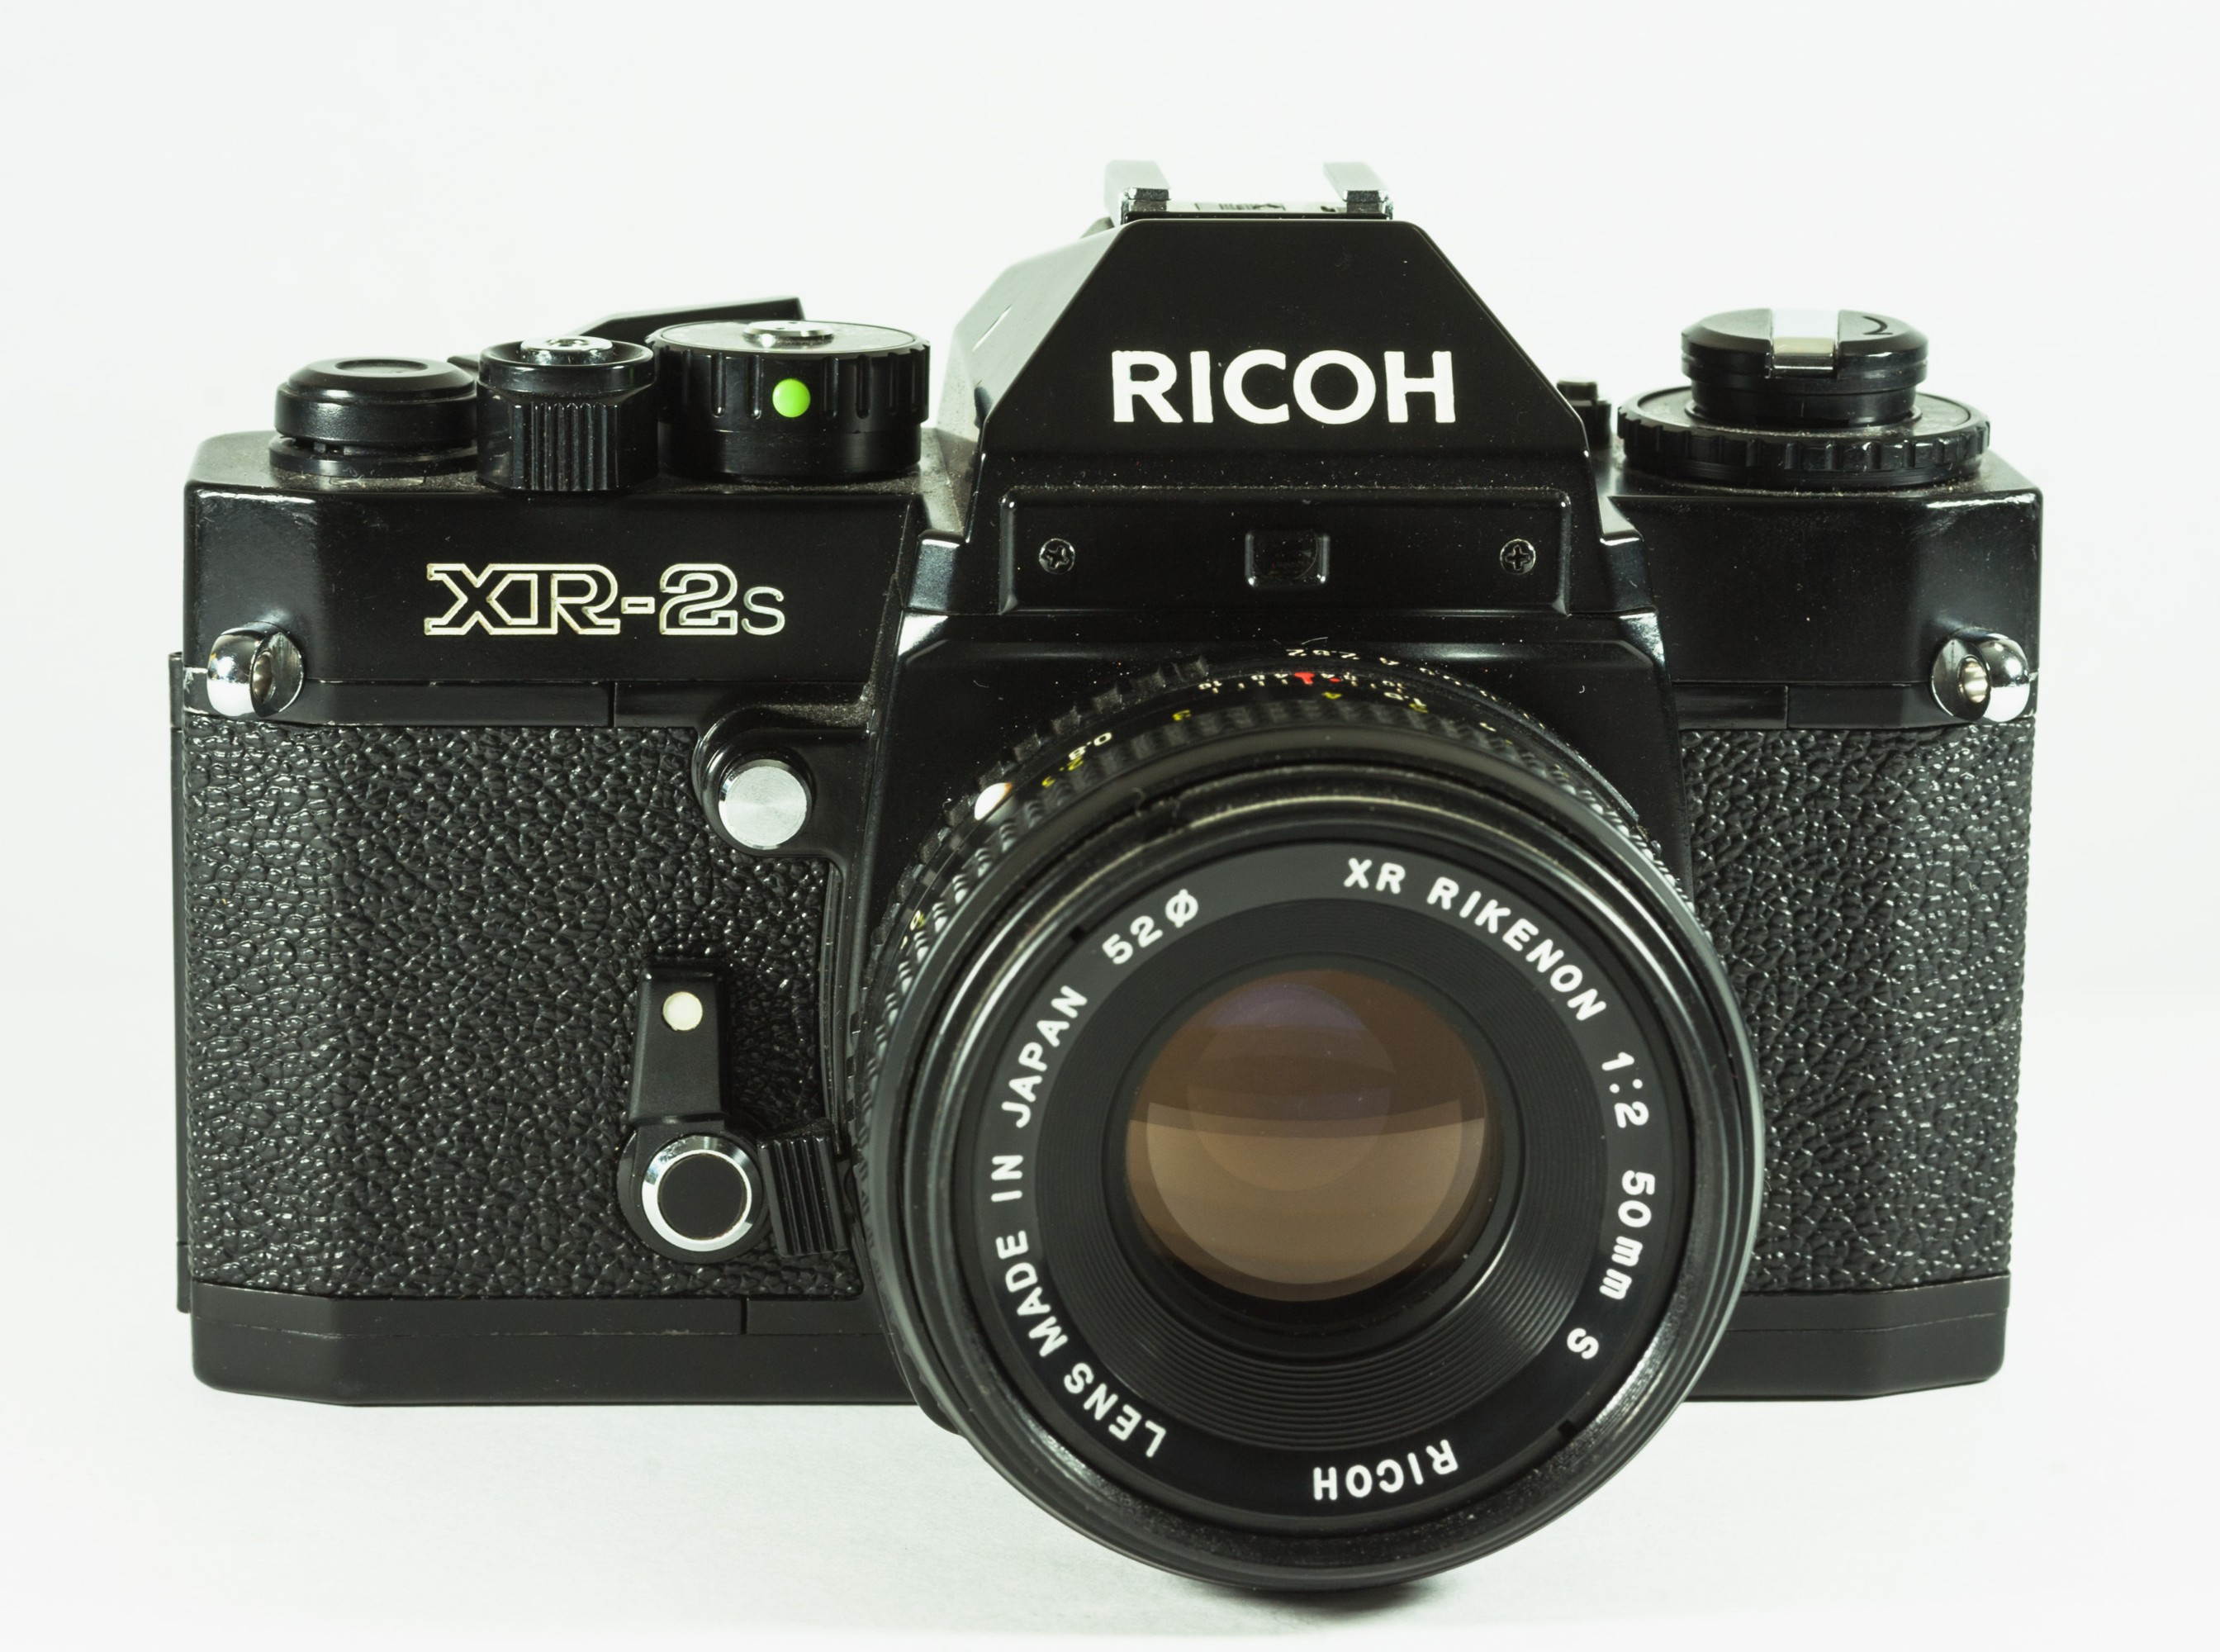 RICOH XR-2 GOOD AND STRAIGHT cropped and resized.jpg